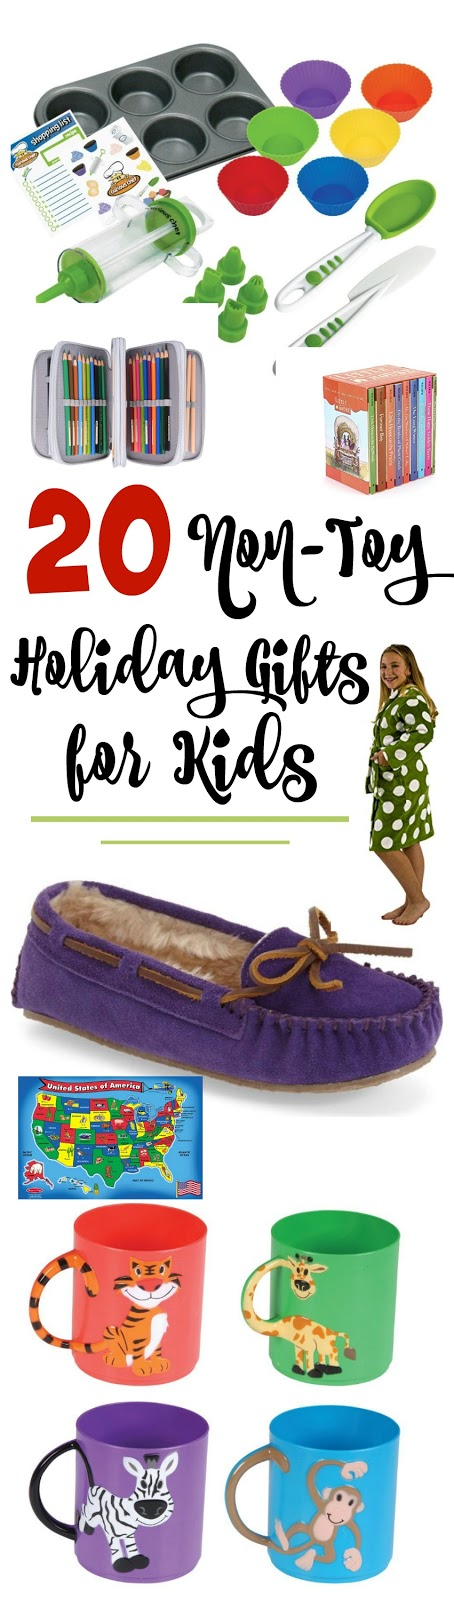 Holiday Gift Guide: 20 Non-Toy Gifts for Kids...reach past the toys and give your kids something they'll treasure this Christmas!  From books, to educational games, to funcational items they need this holiday list is top notch! (sweetandsavoryfood.com)